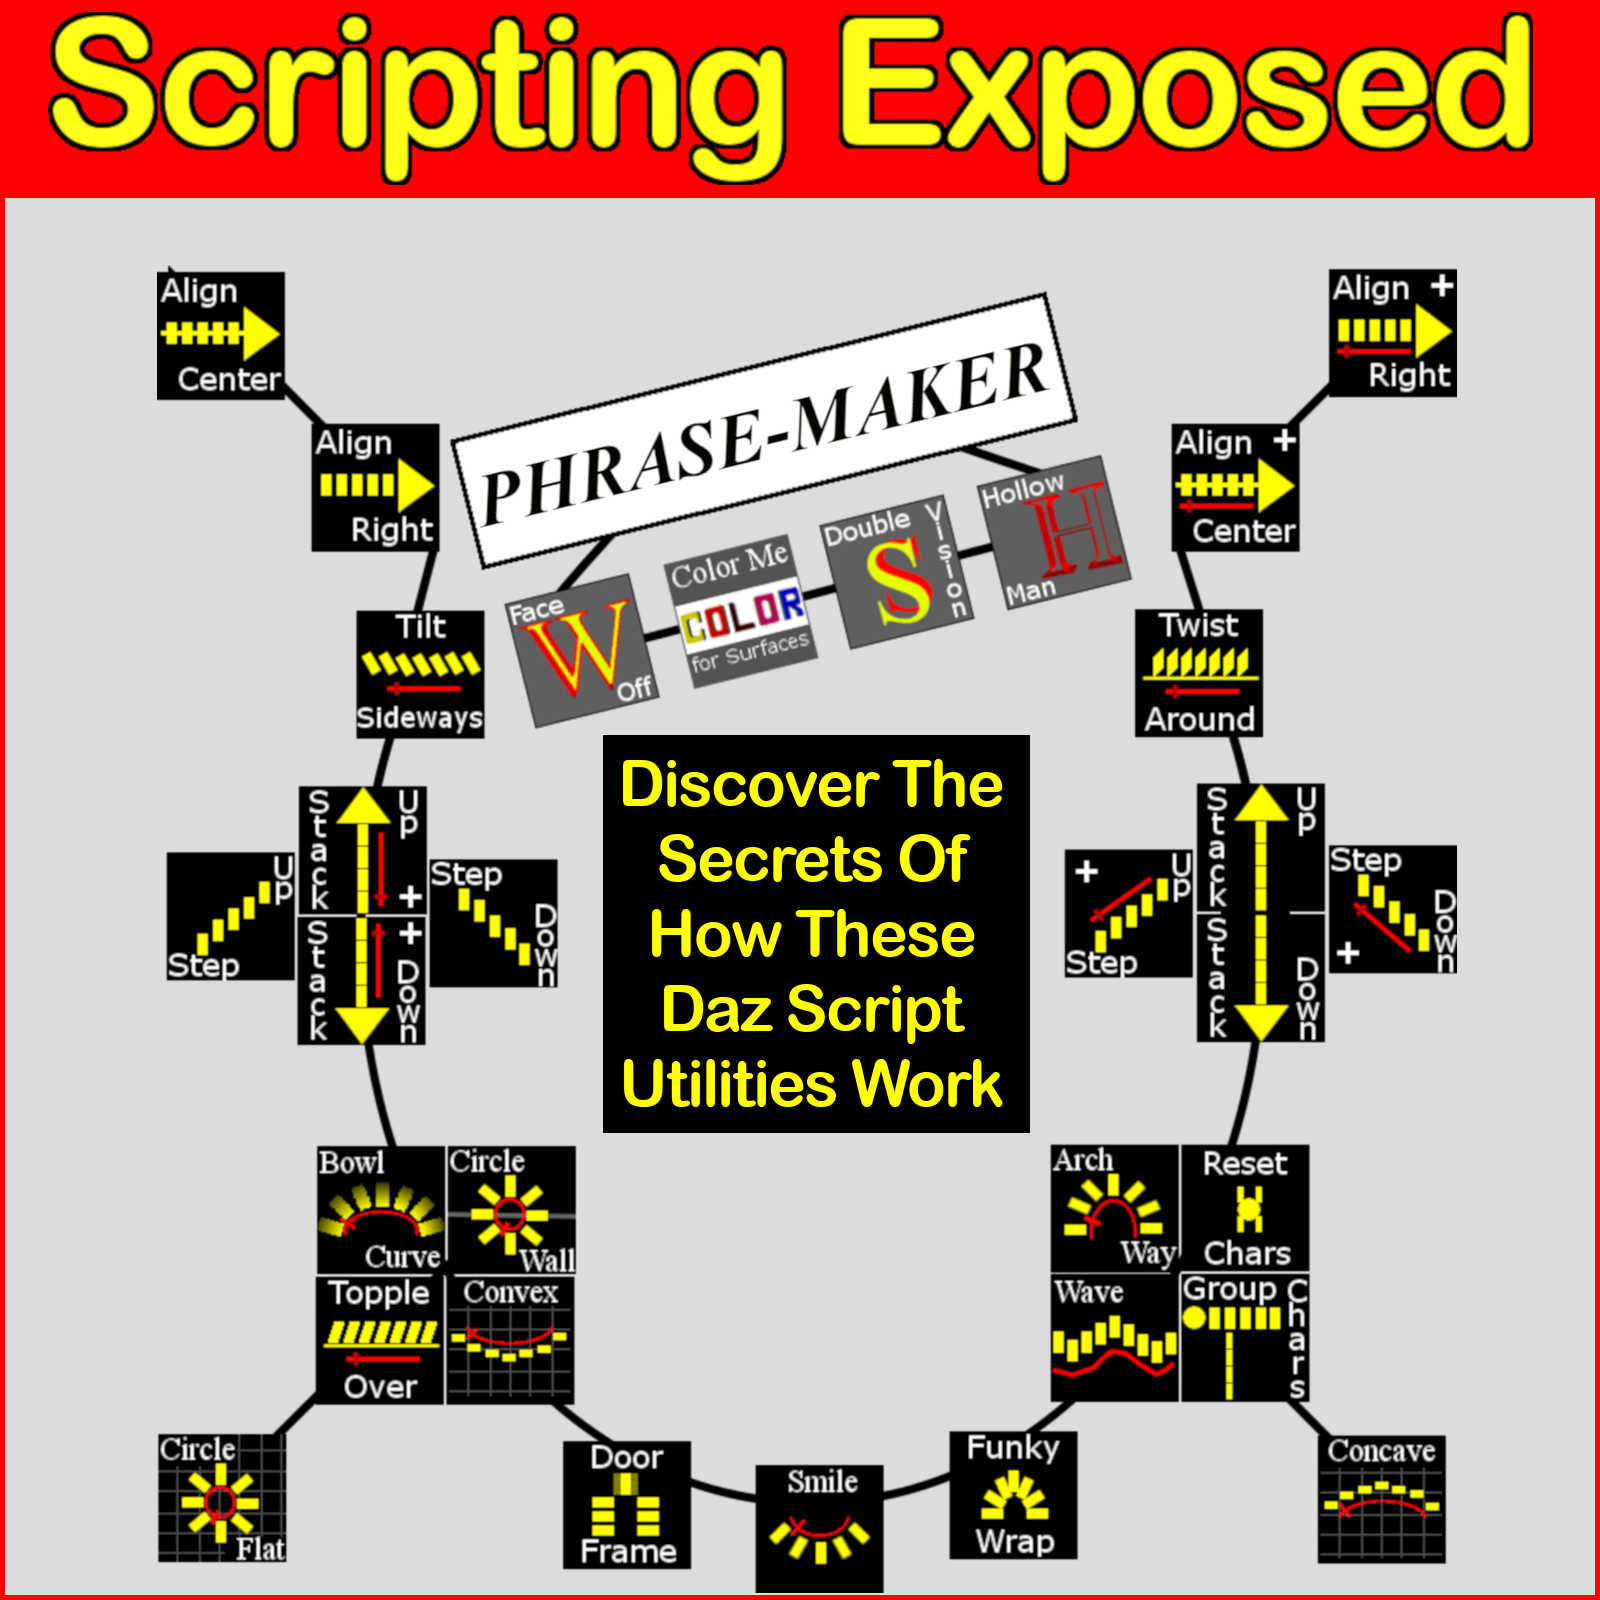 SCRIPTING EXPOSED Phrase-Maker Utilities, The Uncensored Daz Script Source Code by Winterbrose